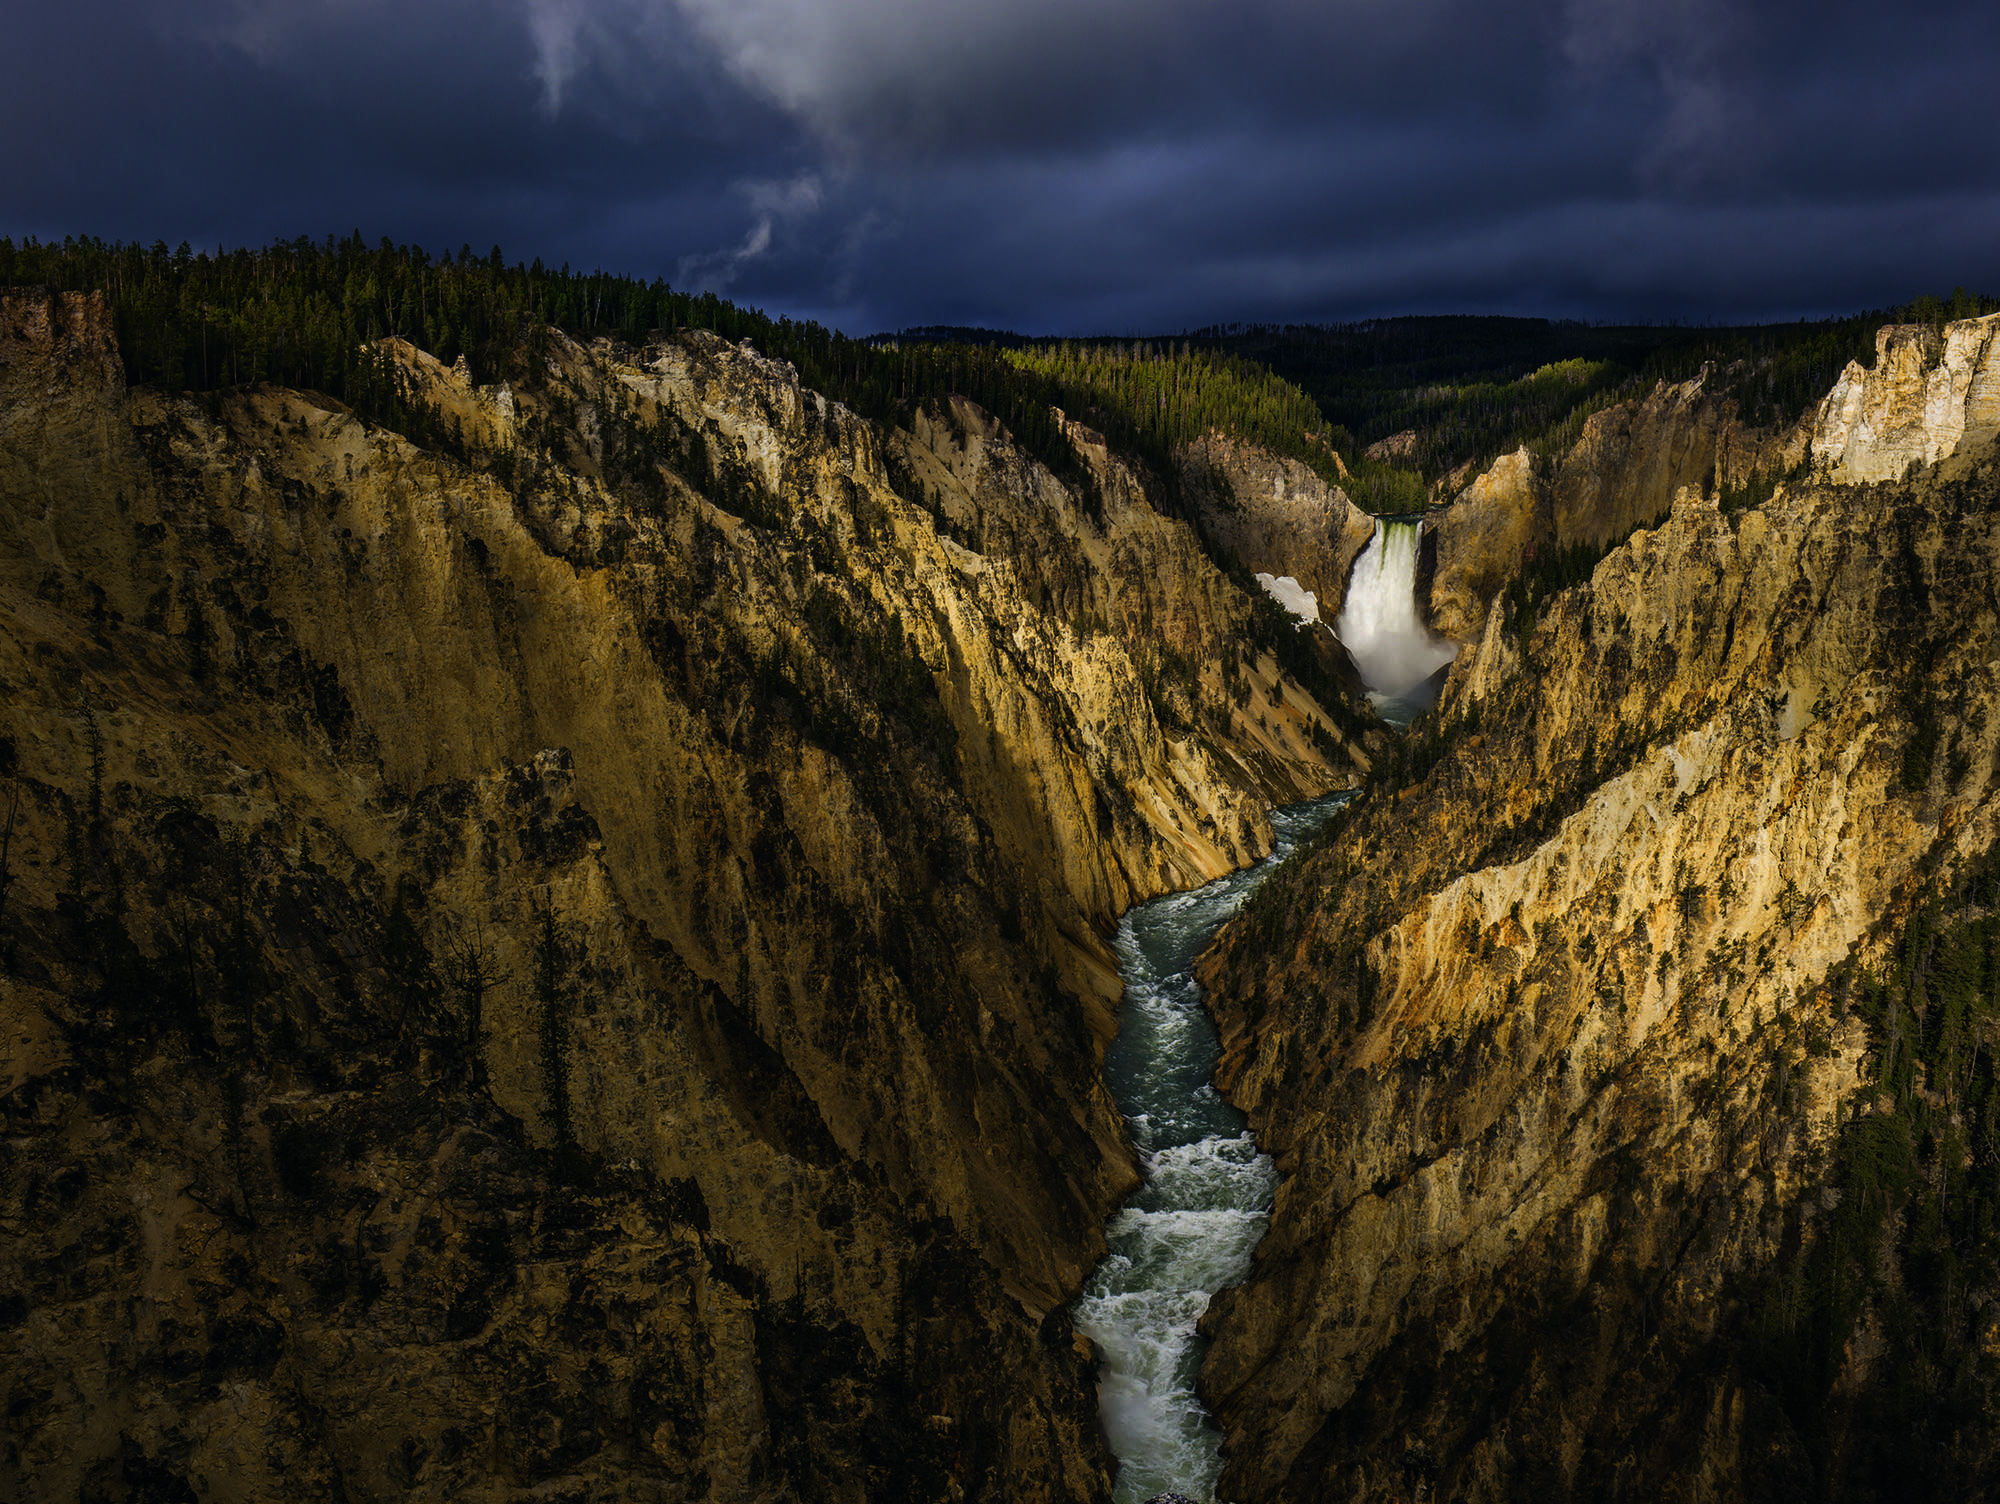 The Grand Canyon of the Yellowstone River